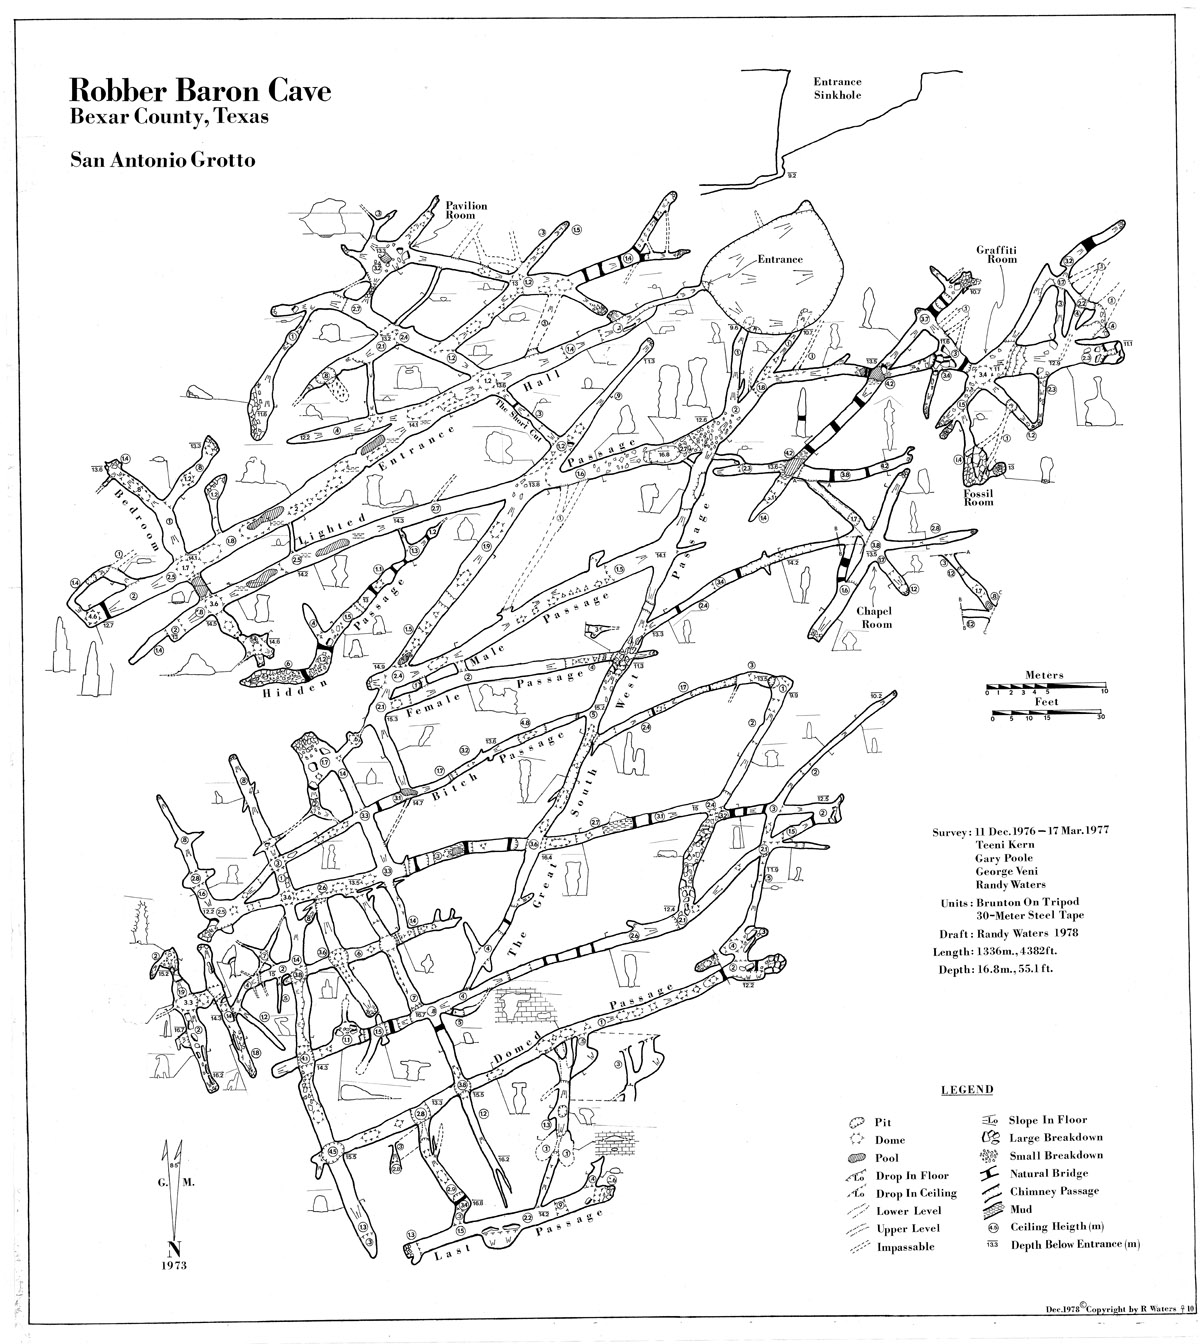 robber baron cave maps tcma How Crystals Form in Caves 1978 robber baron cave map